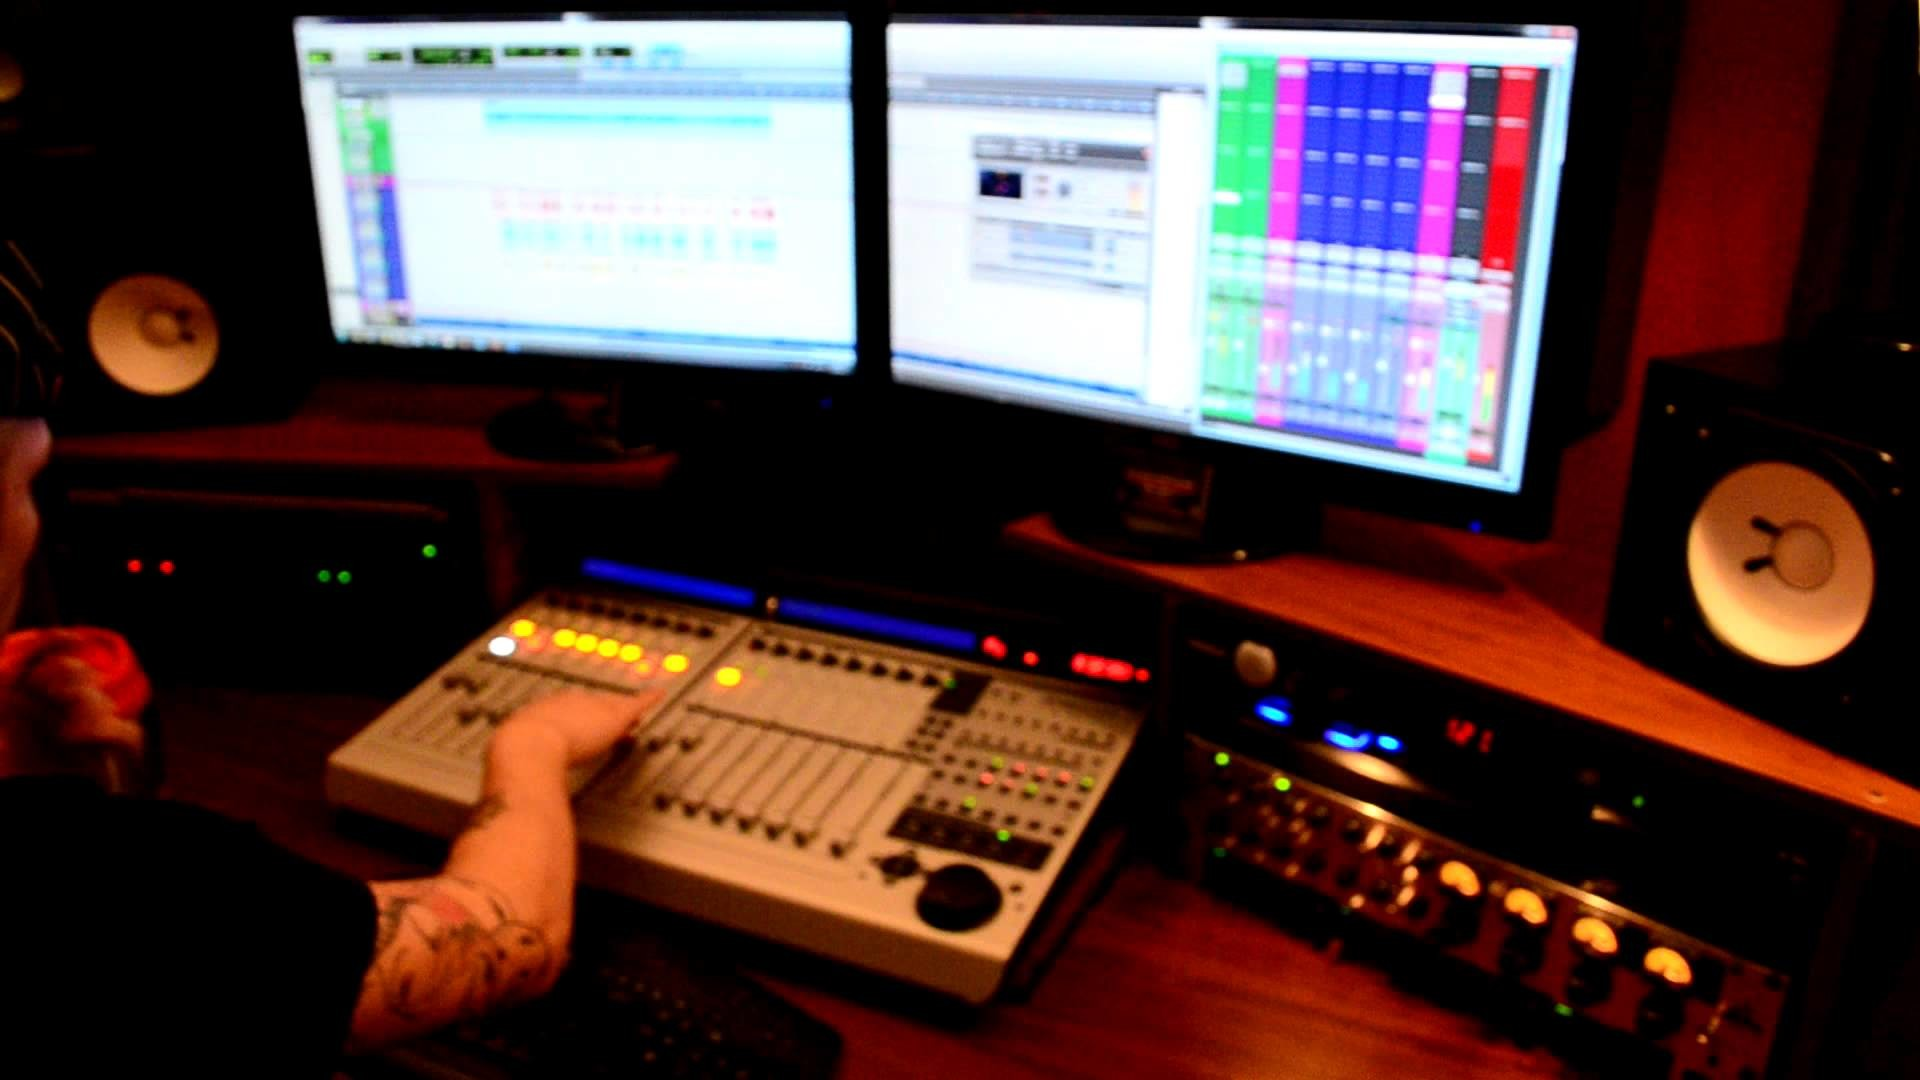 1920x1080 A Look inside Ninth Year Music Production Studios (NyM-Pro)